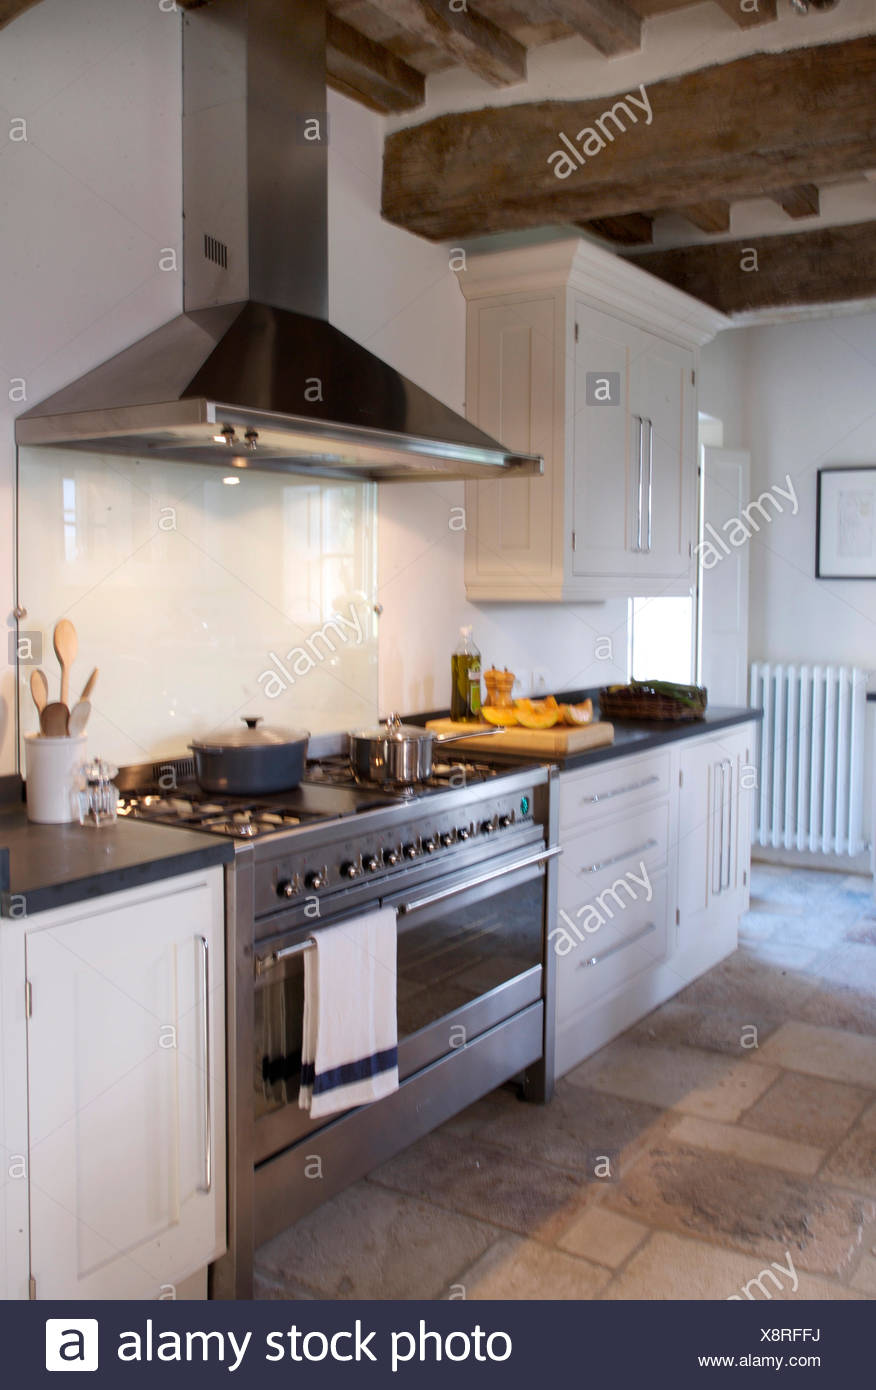 Modern Stainless Steel Extractor And Range Oven In Italian